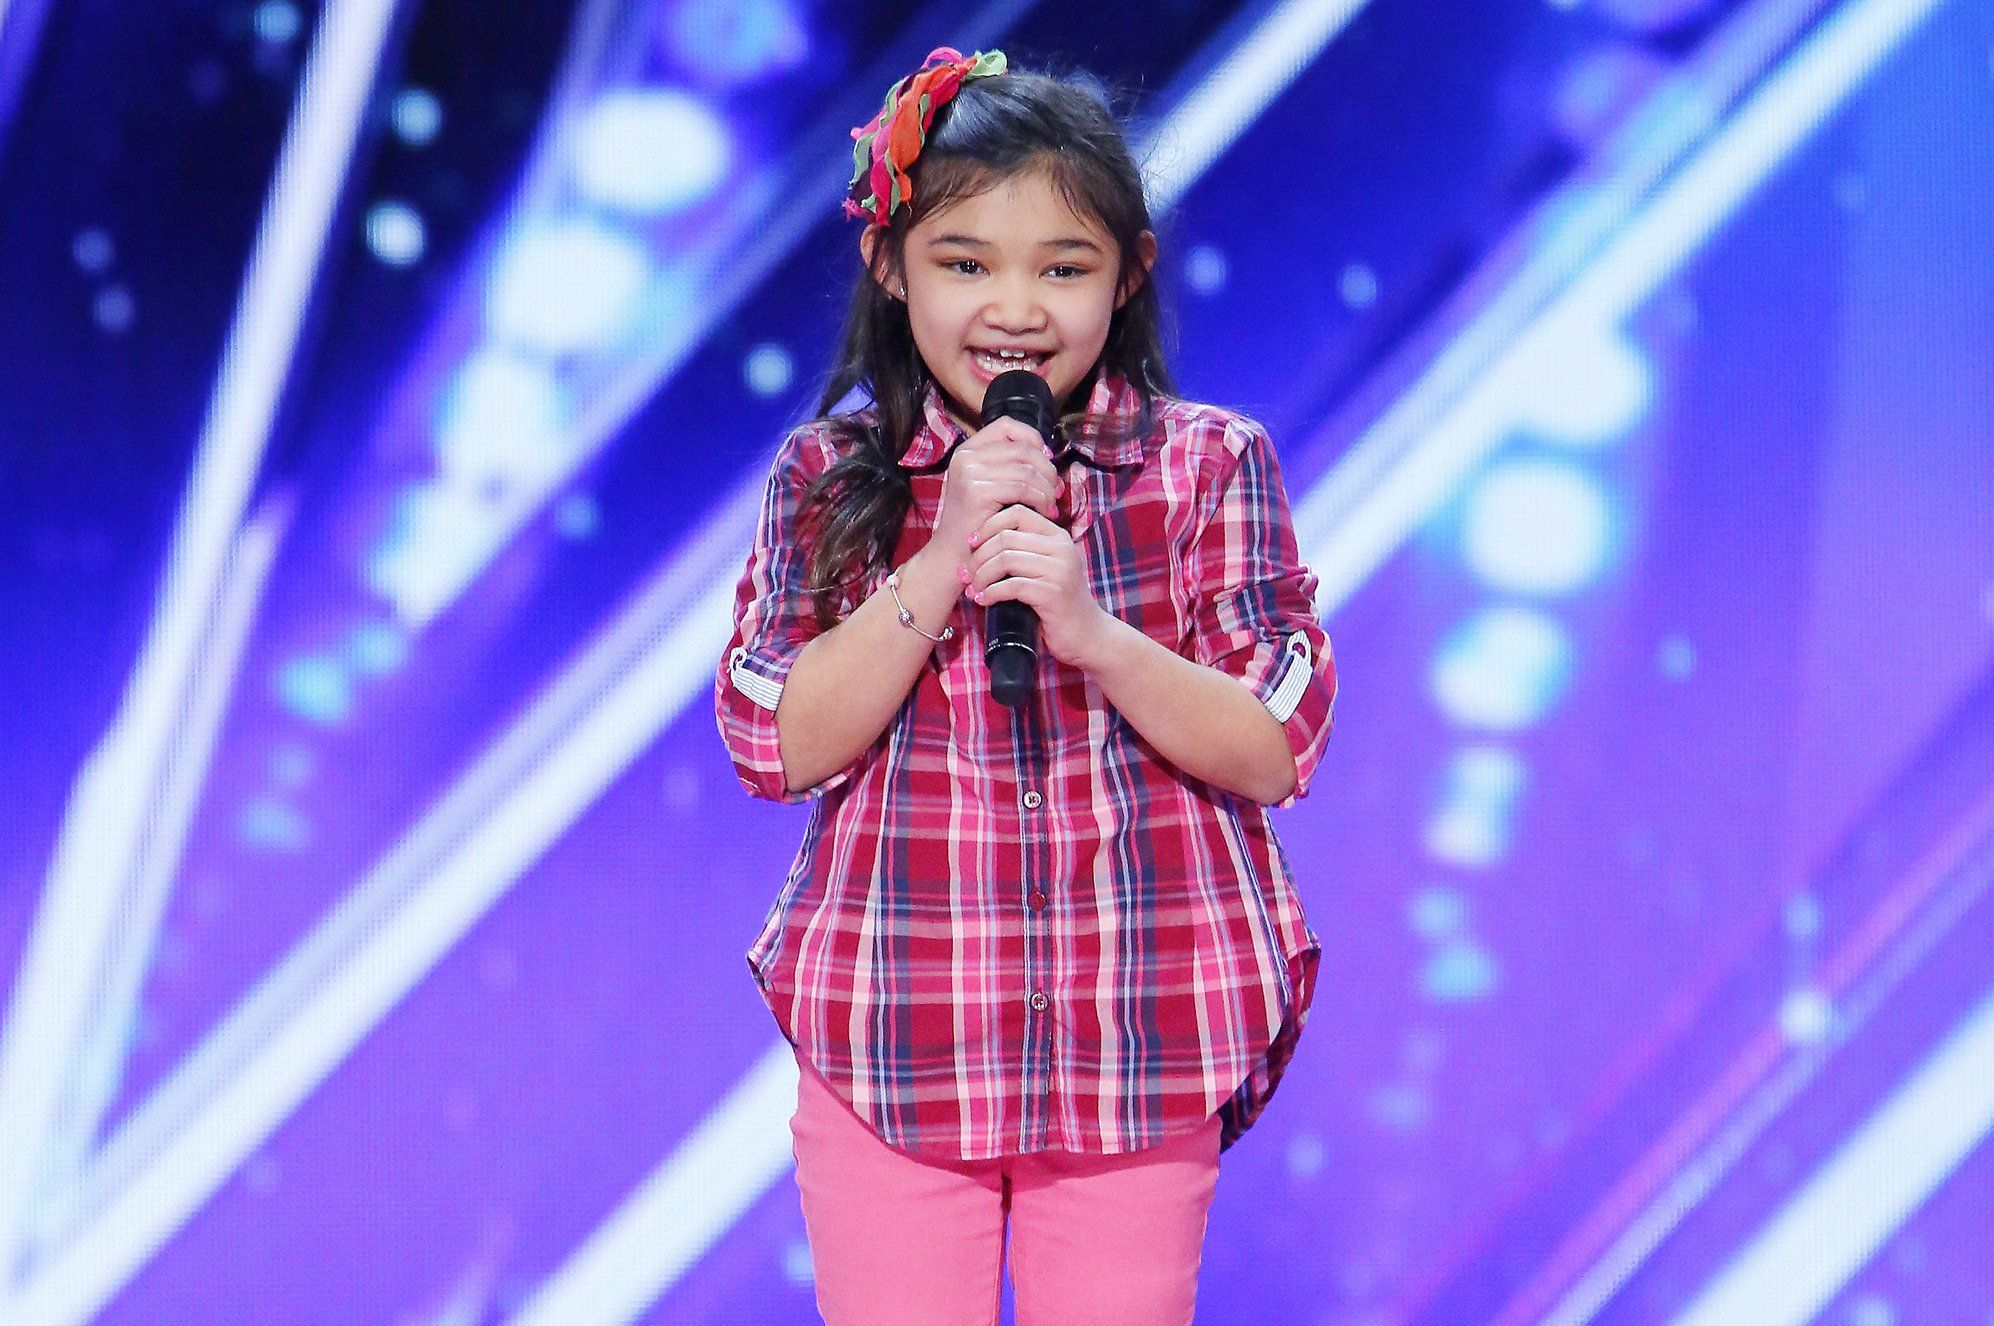 Talking With America S Got Talent 9 Year Old Singing Sensation Angelica Hale America S Got Talent Videos America S Got Talent Angelica